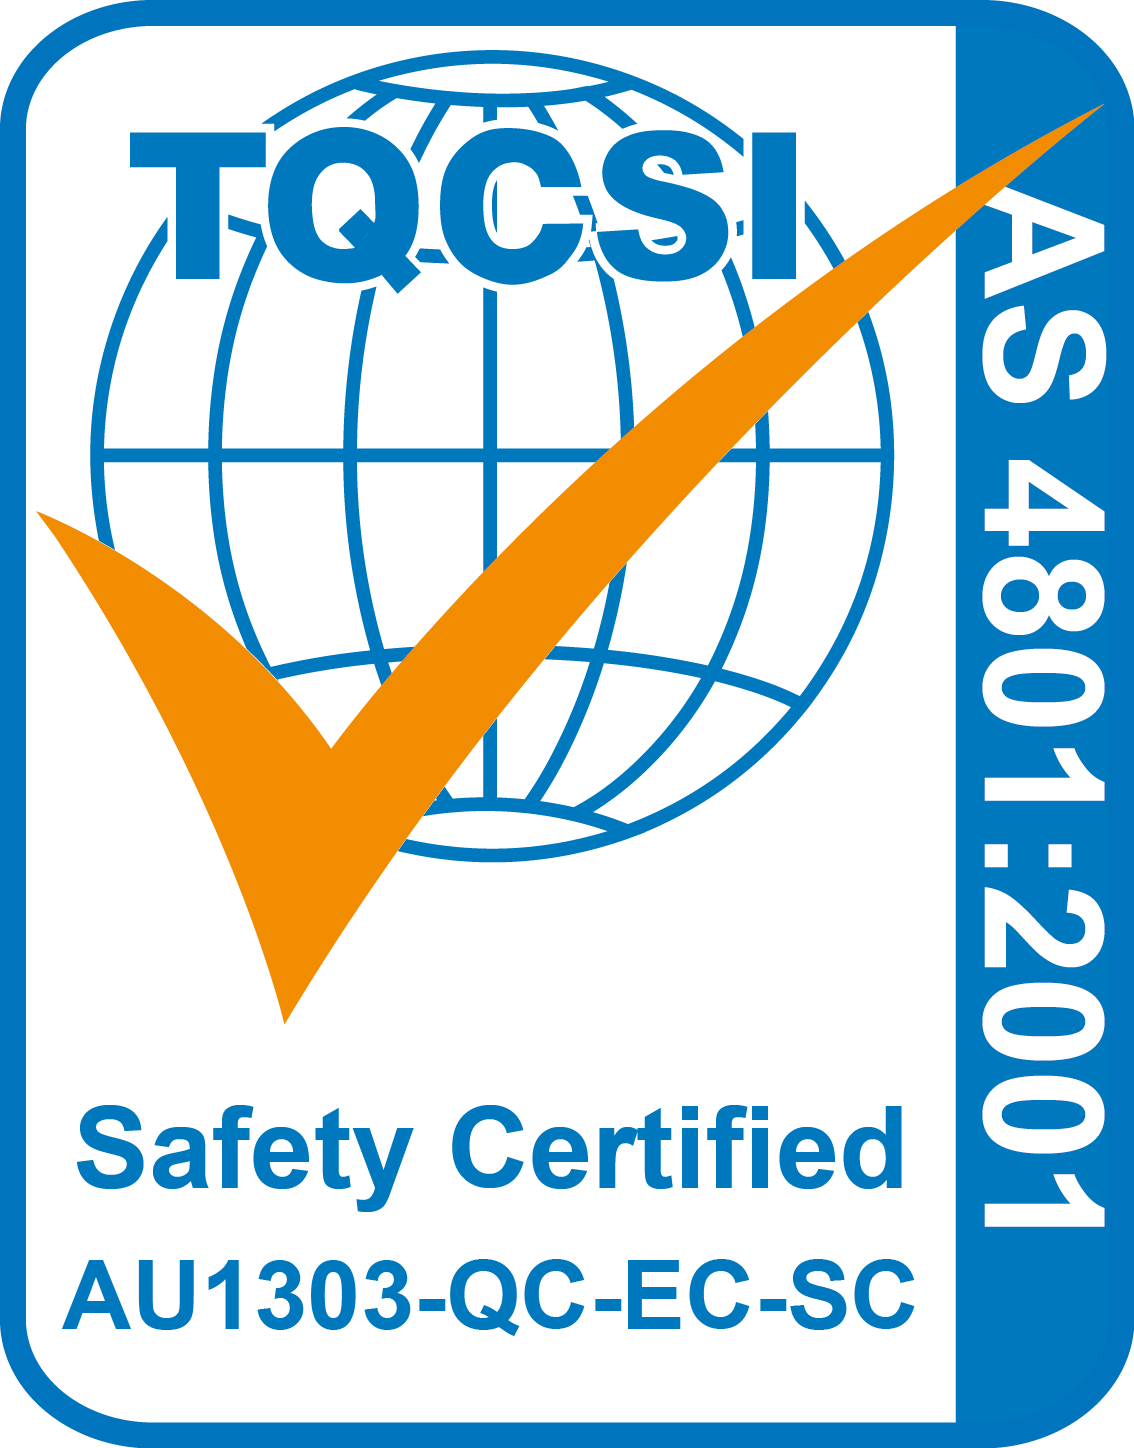 AS 4801 Certification Mark.png